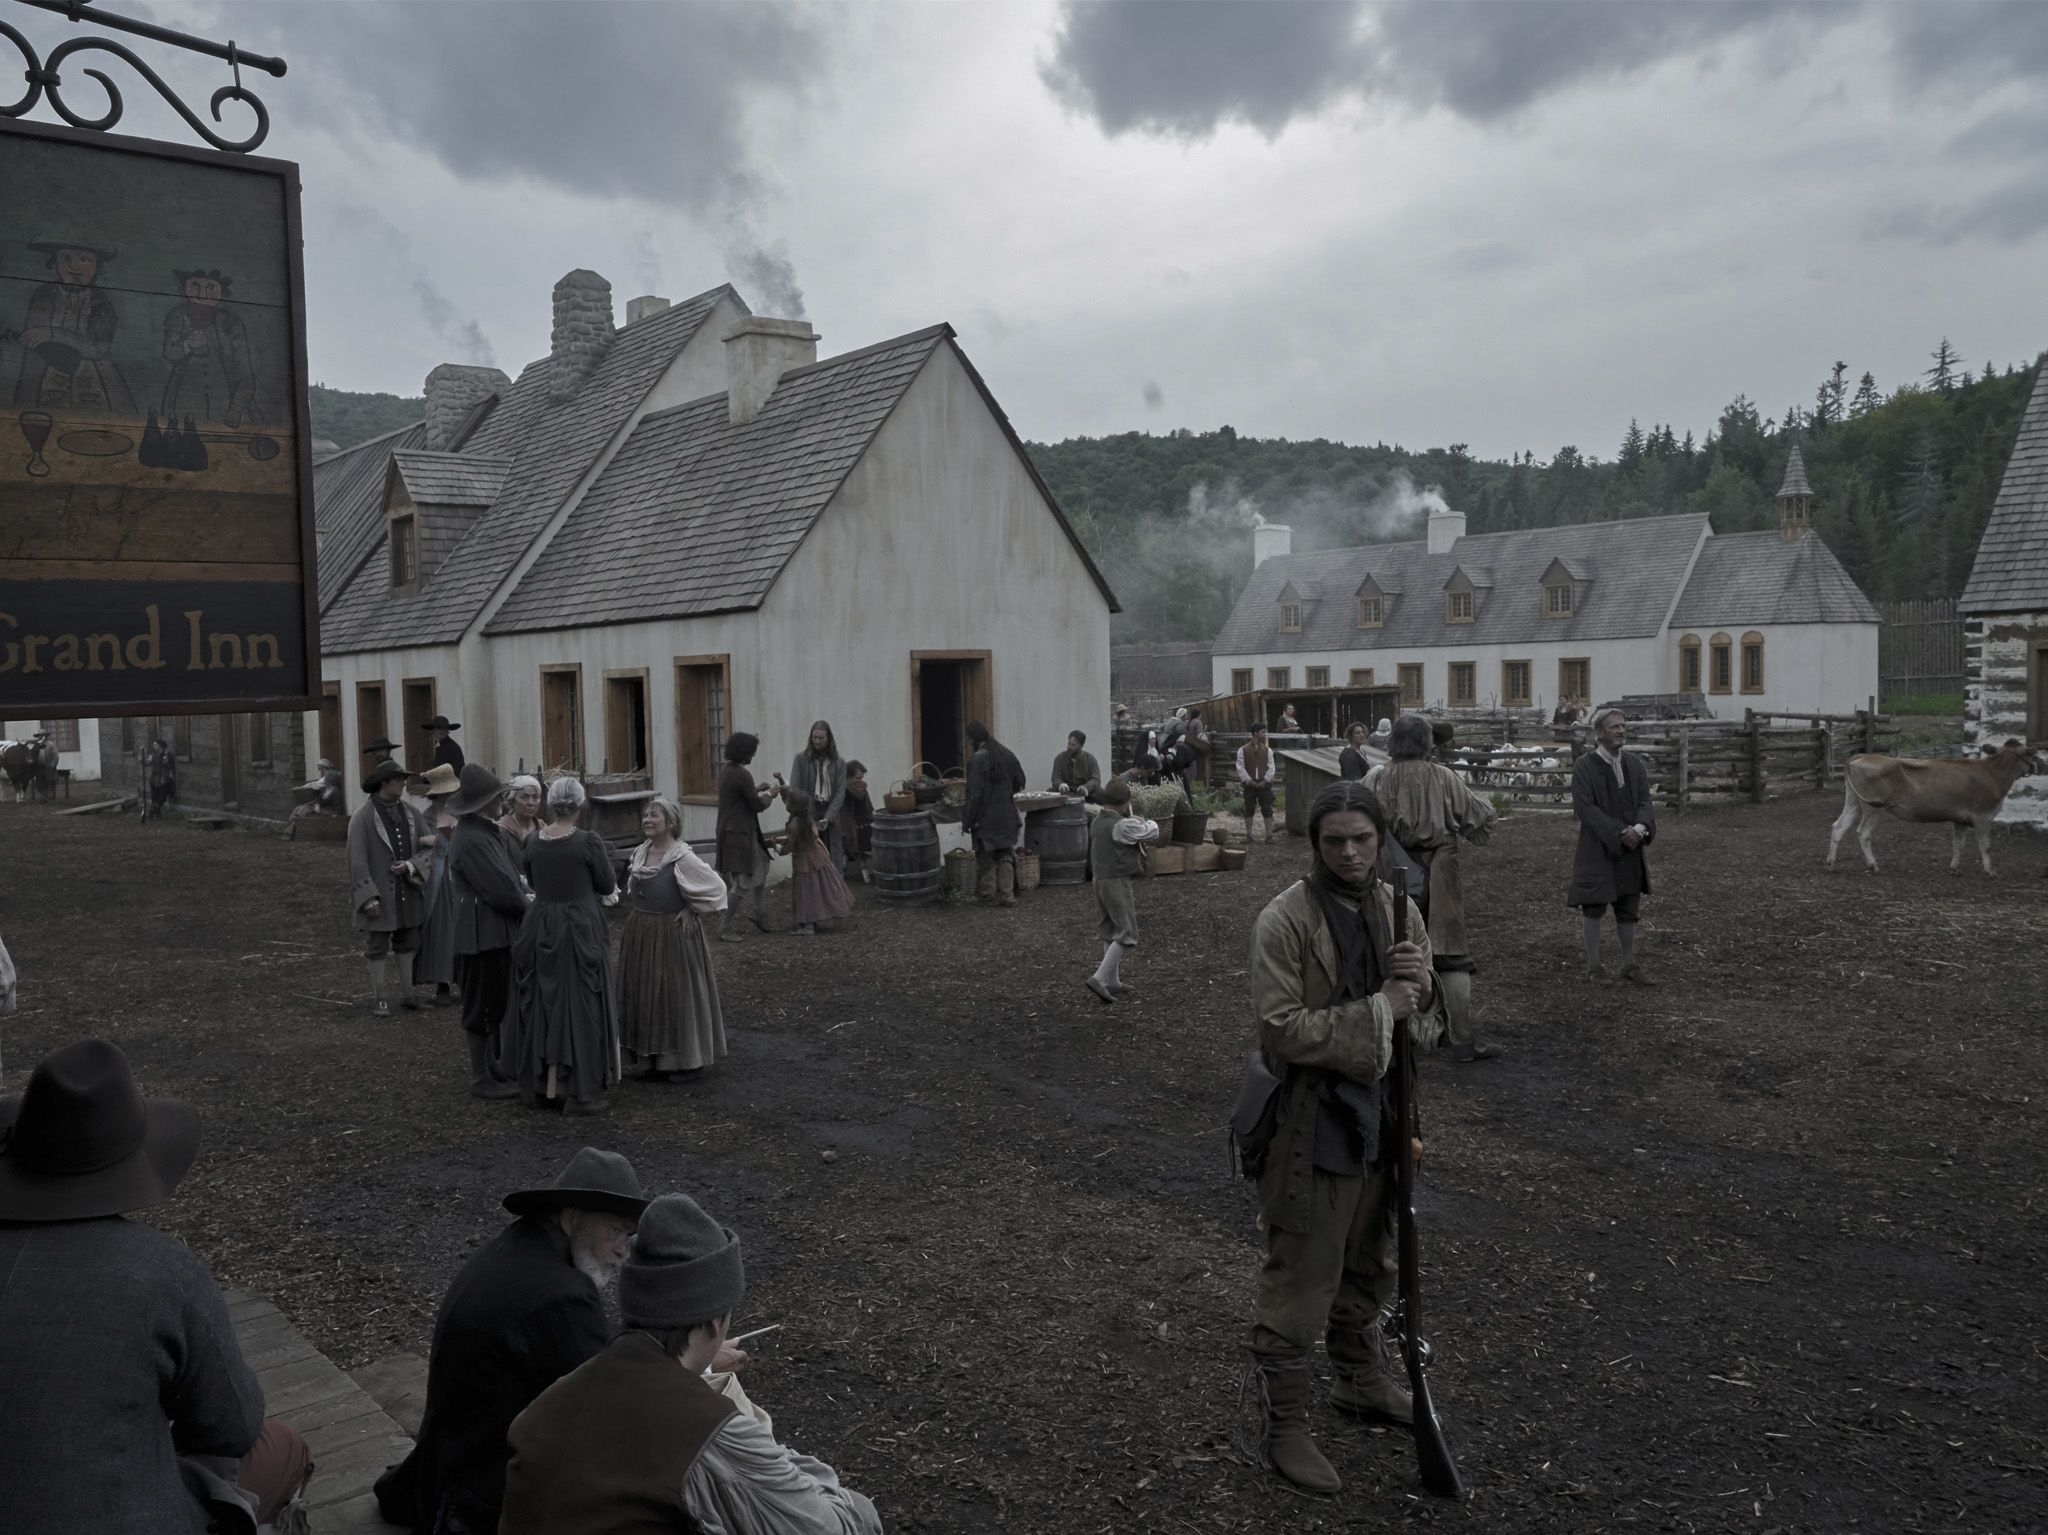 The town of Wobik outside of Le Grand Inn. This image is from Barkskins. [Photo of the day - August 2020]